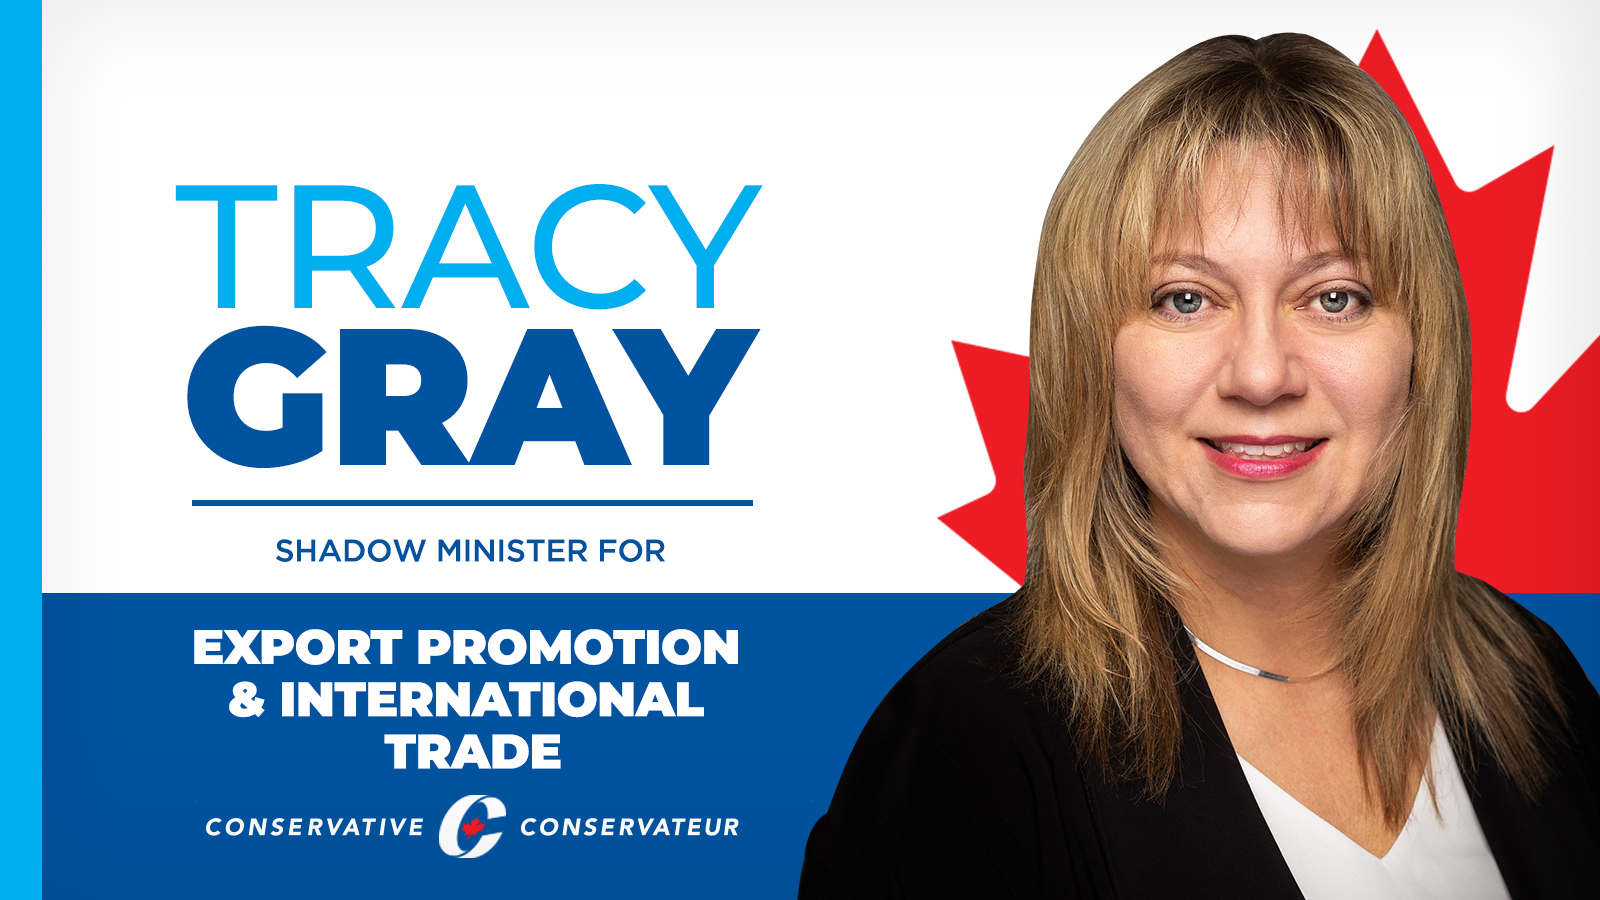 Statement: Tracy Gray named Official Opposition's Shadow Minister for Export Promotion & International Trade